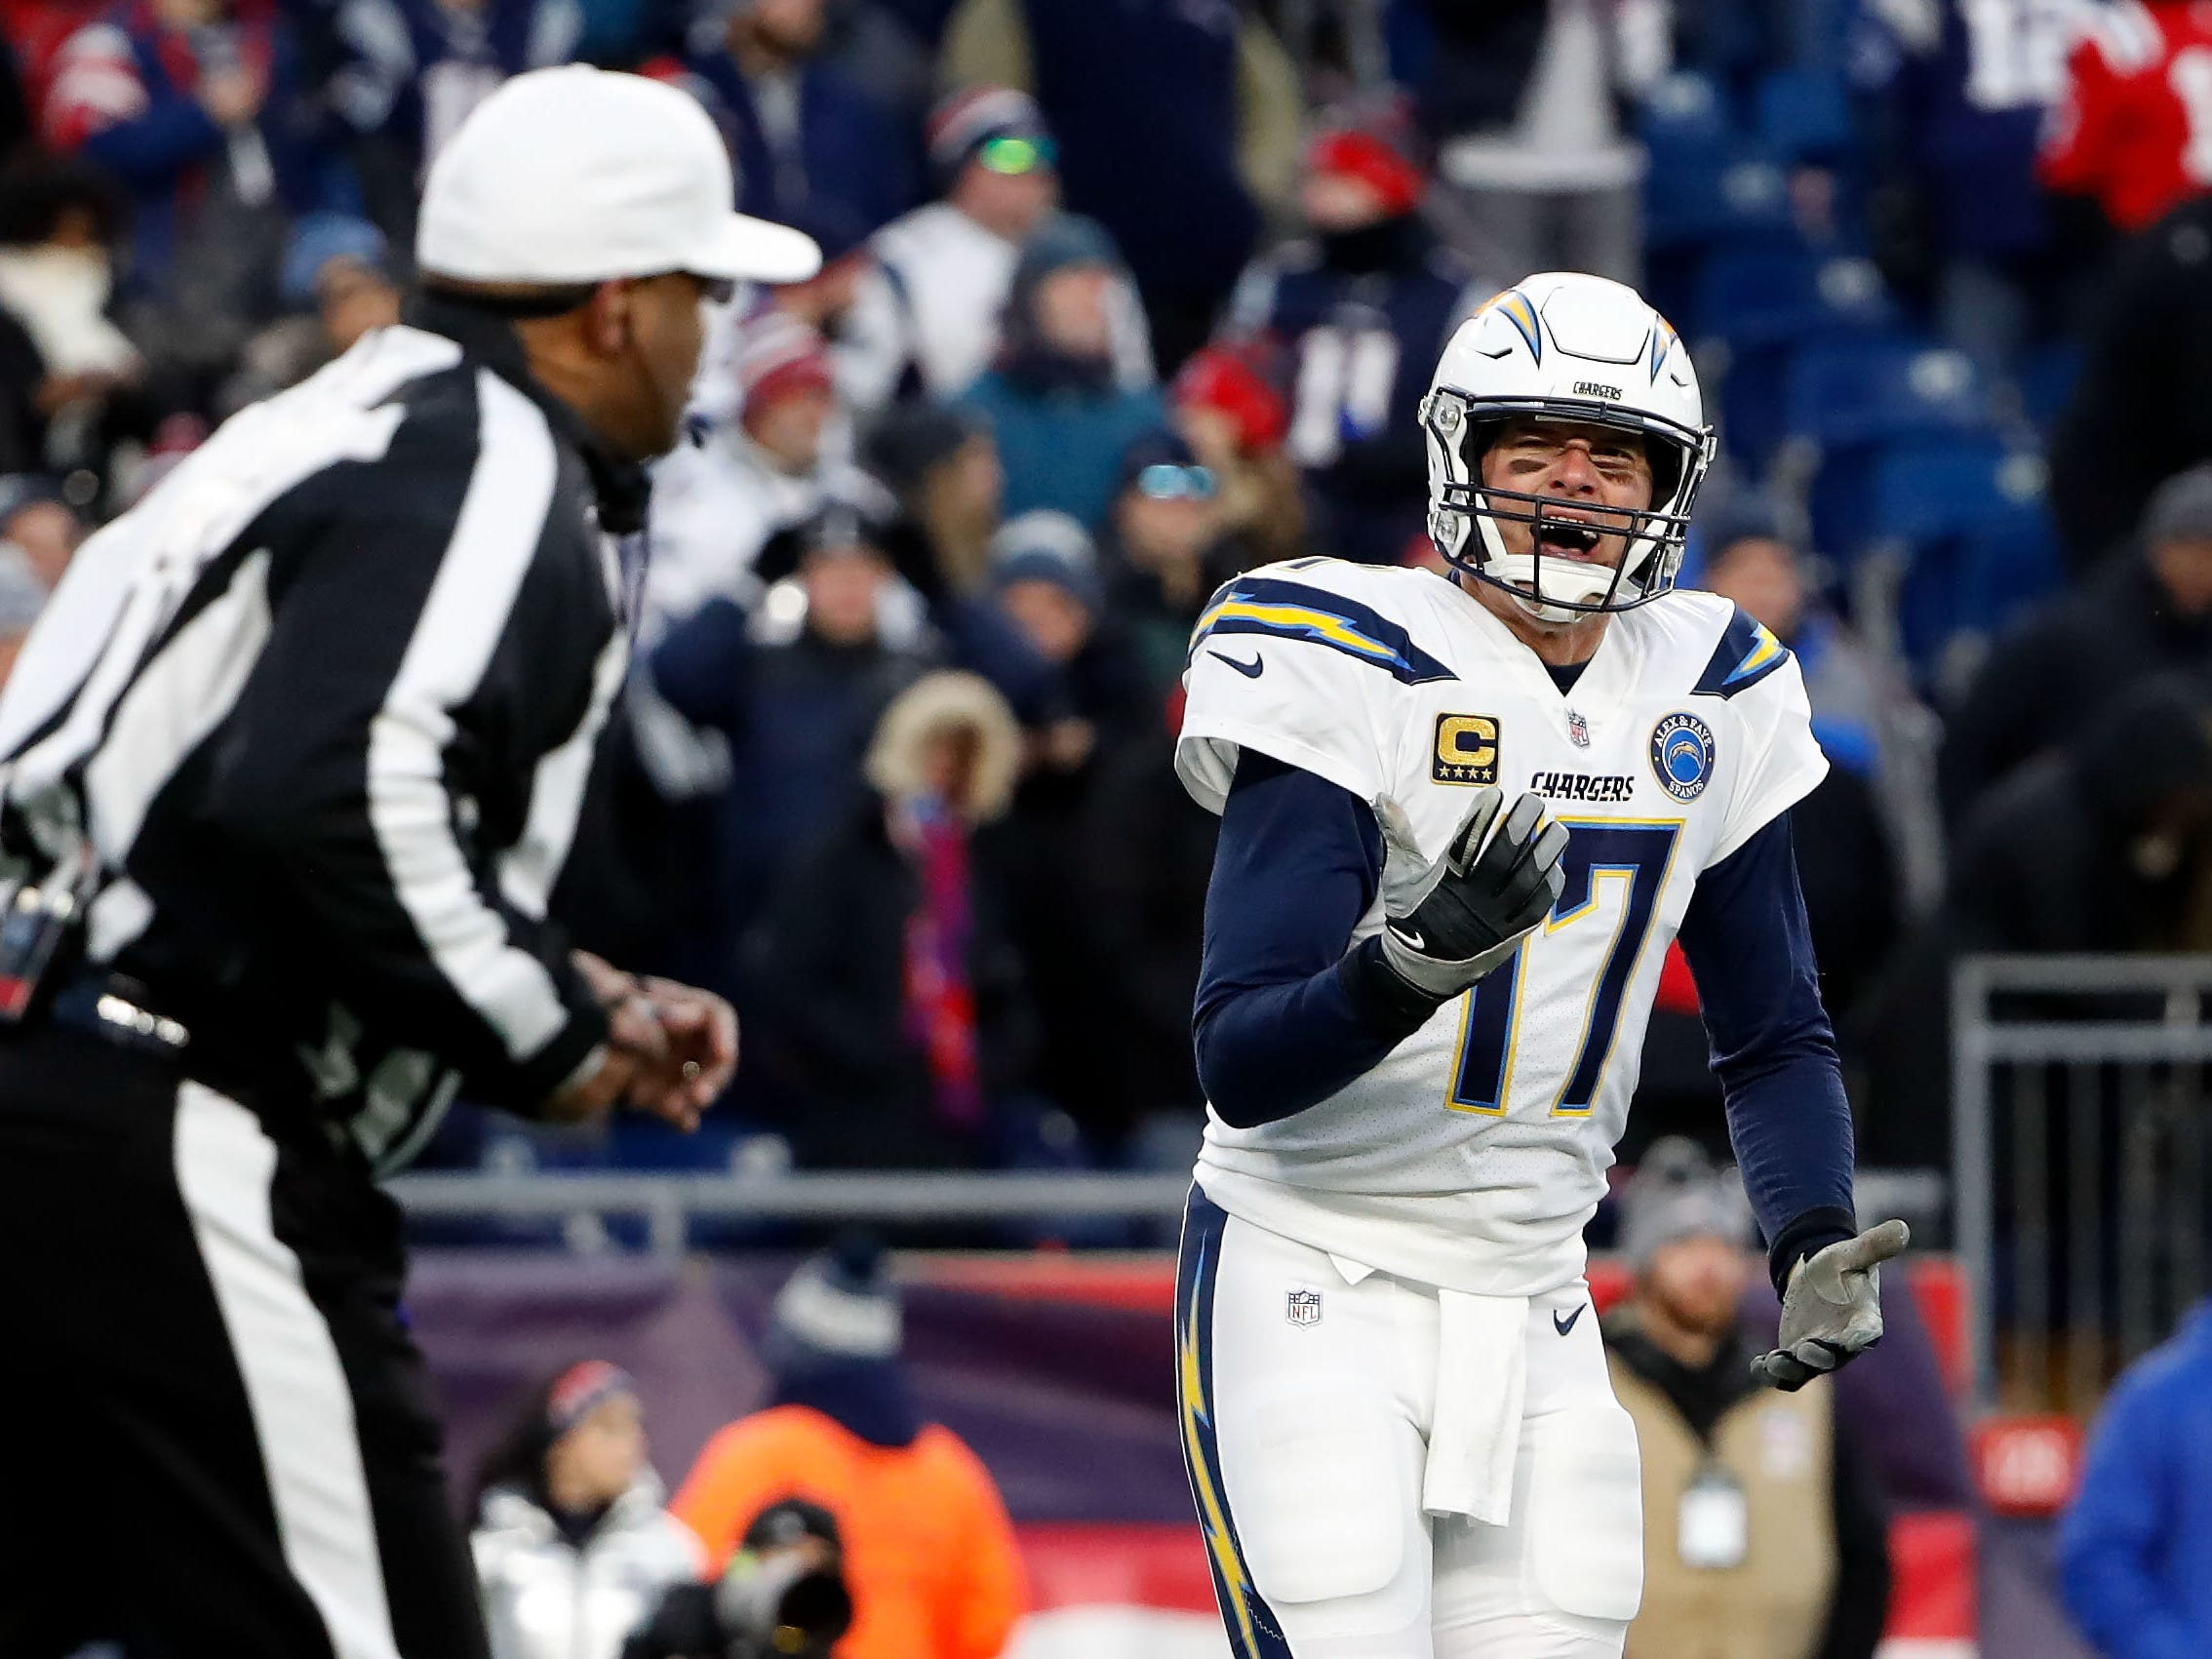 Los Angeles Chargers quarterback Philip Rivers (17) shouts to an official after a sack by the New England Patriots during the fourth quarter in an AFC Divisional playoff football game at Gillette Stadium.